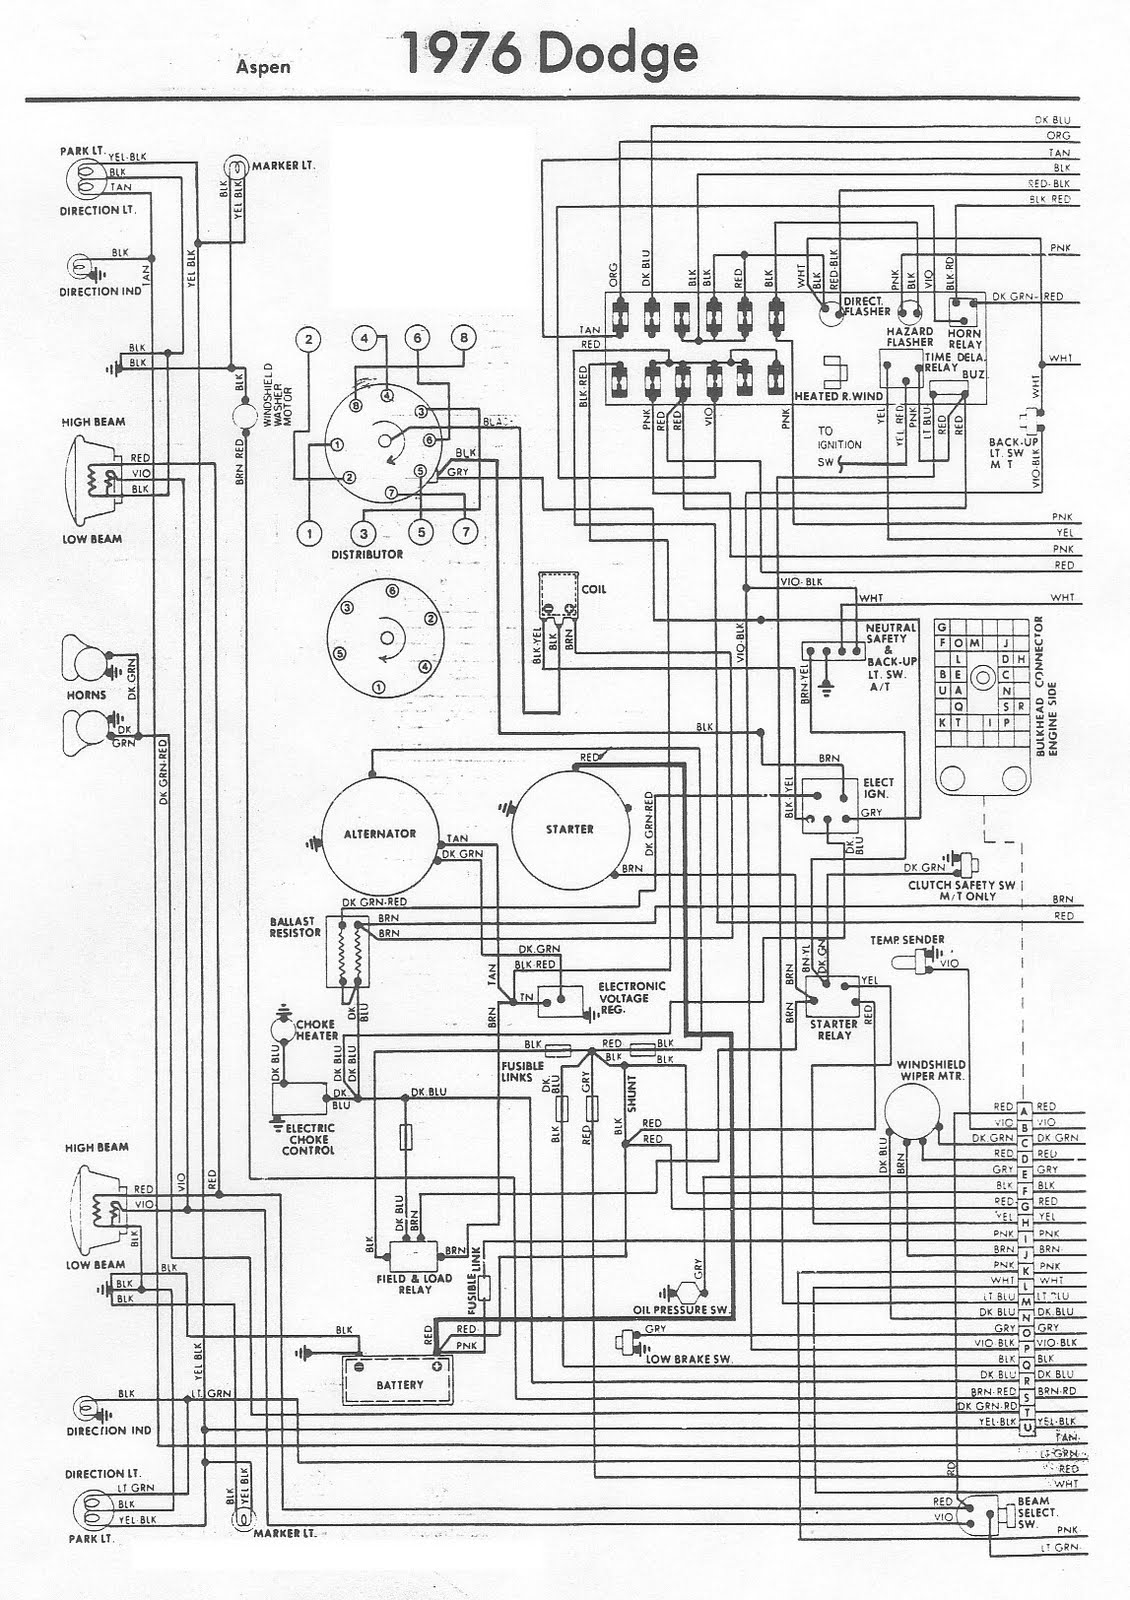 76_Dodge_Aspen_Engine_wiring free auto wiring diagram 1976 dodge aspen engine compartment free dodge wiring diagrams at honlapkeszites.co